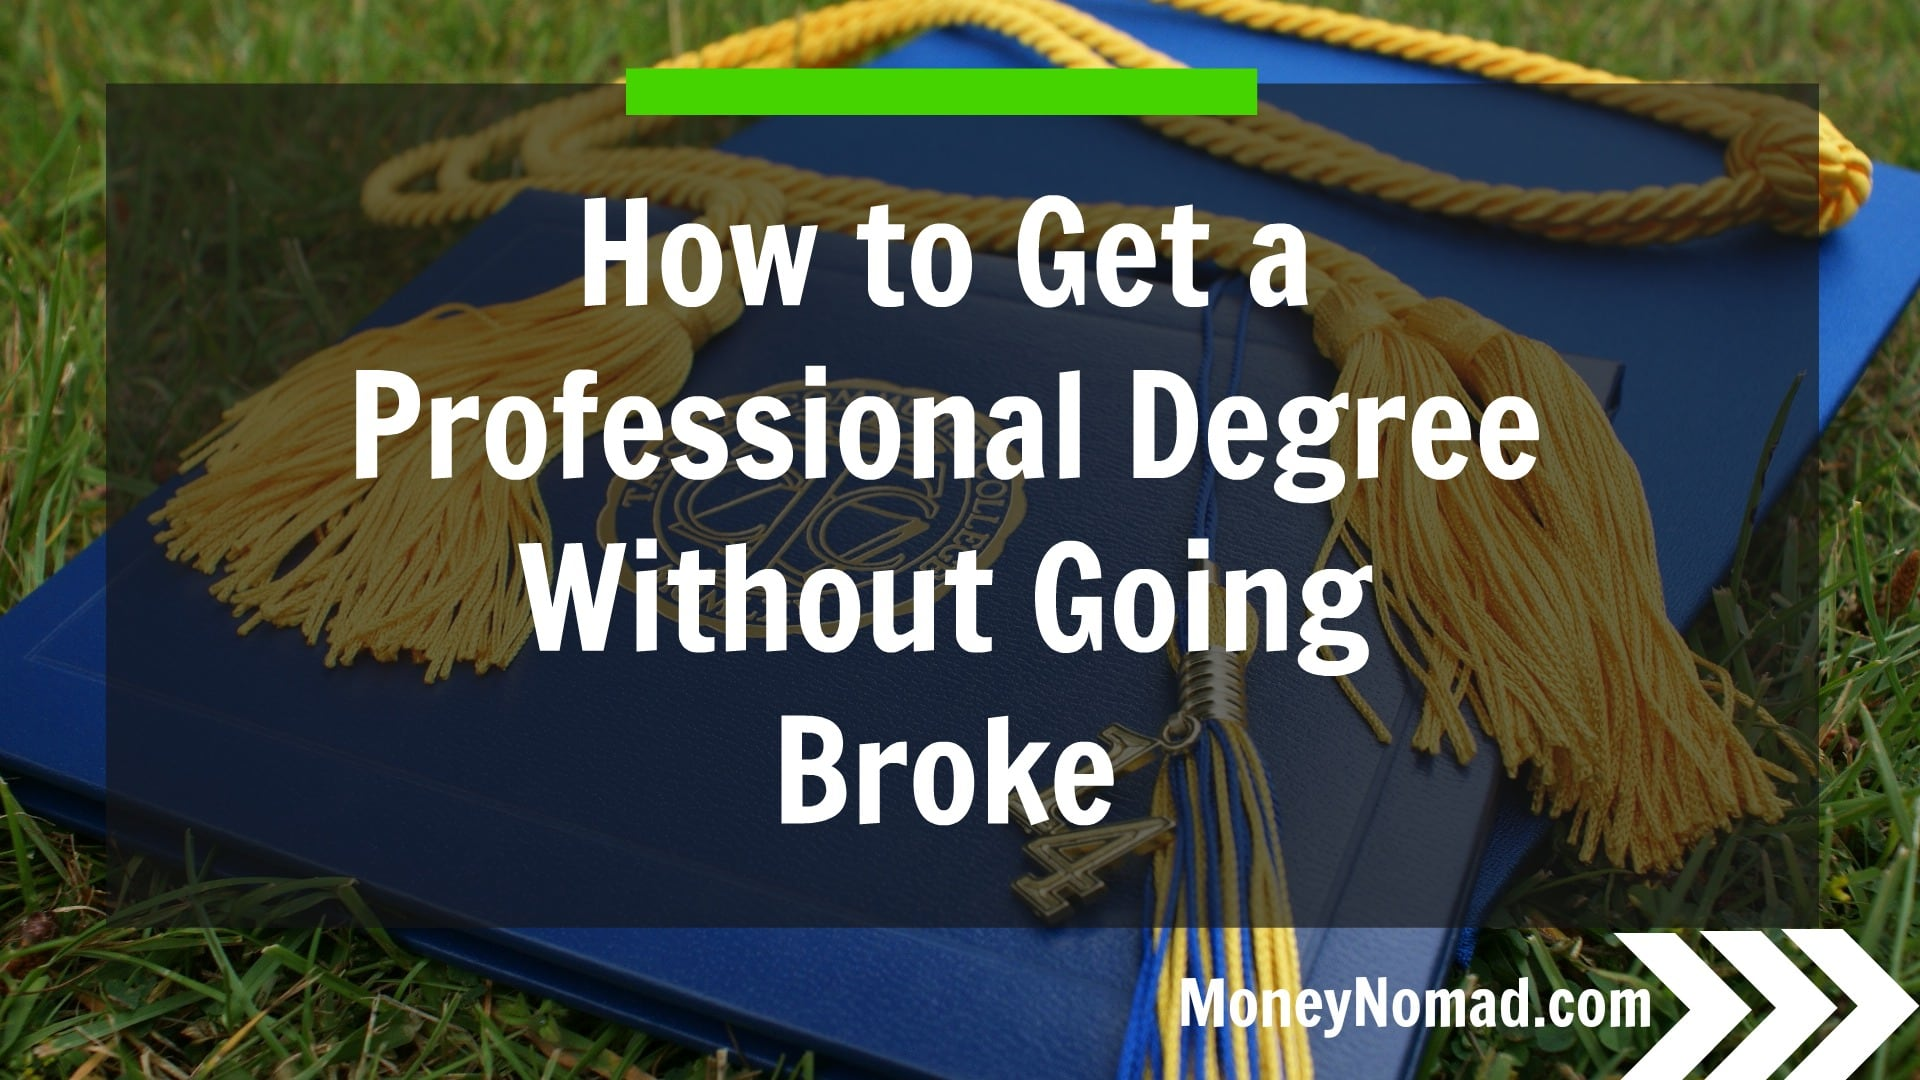 How to Get a Professional Degree without Going Broke